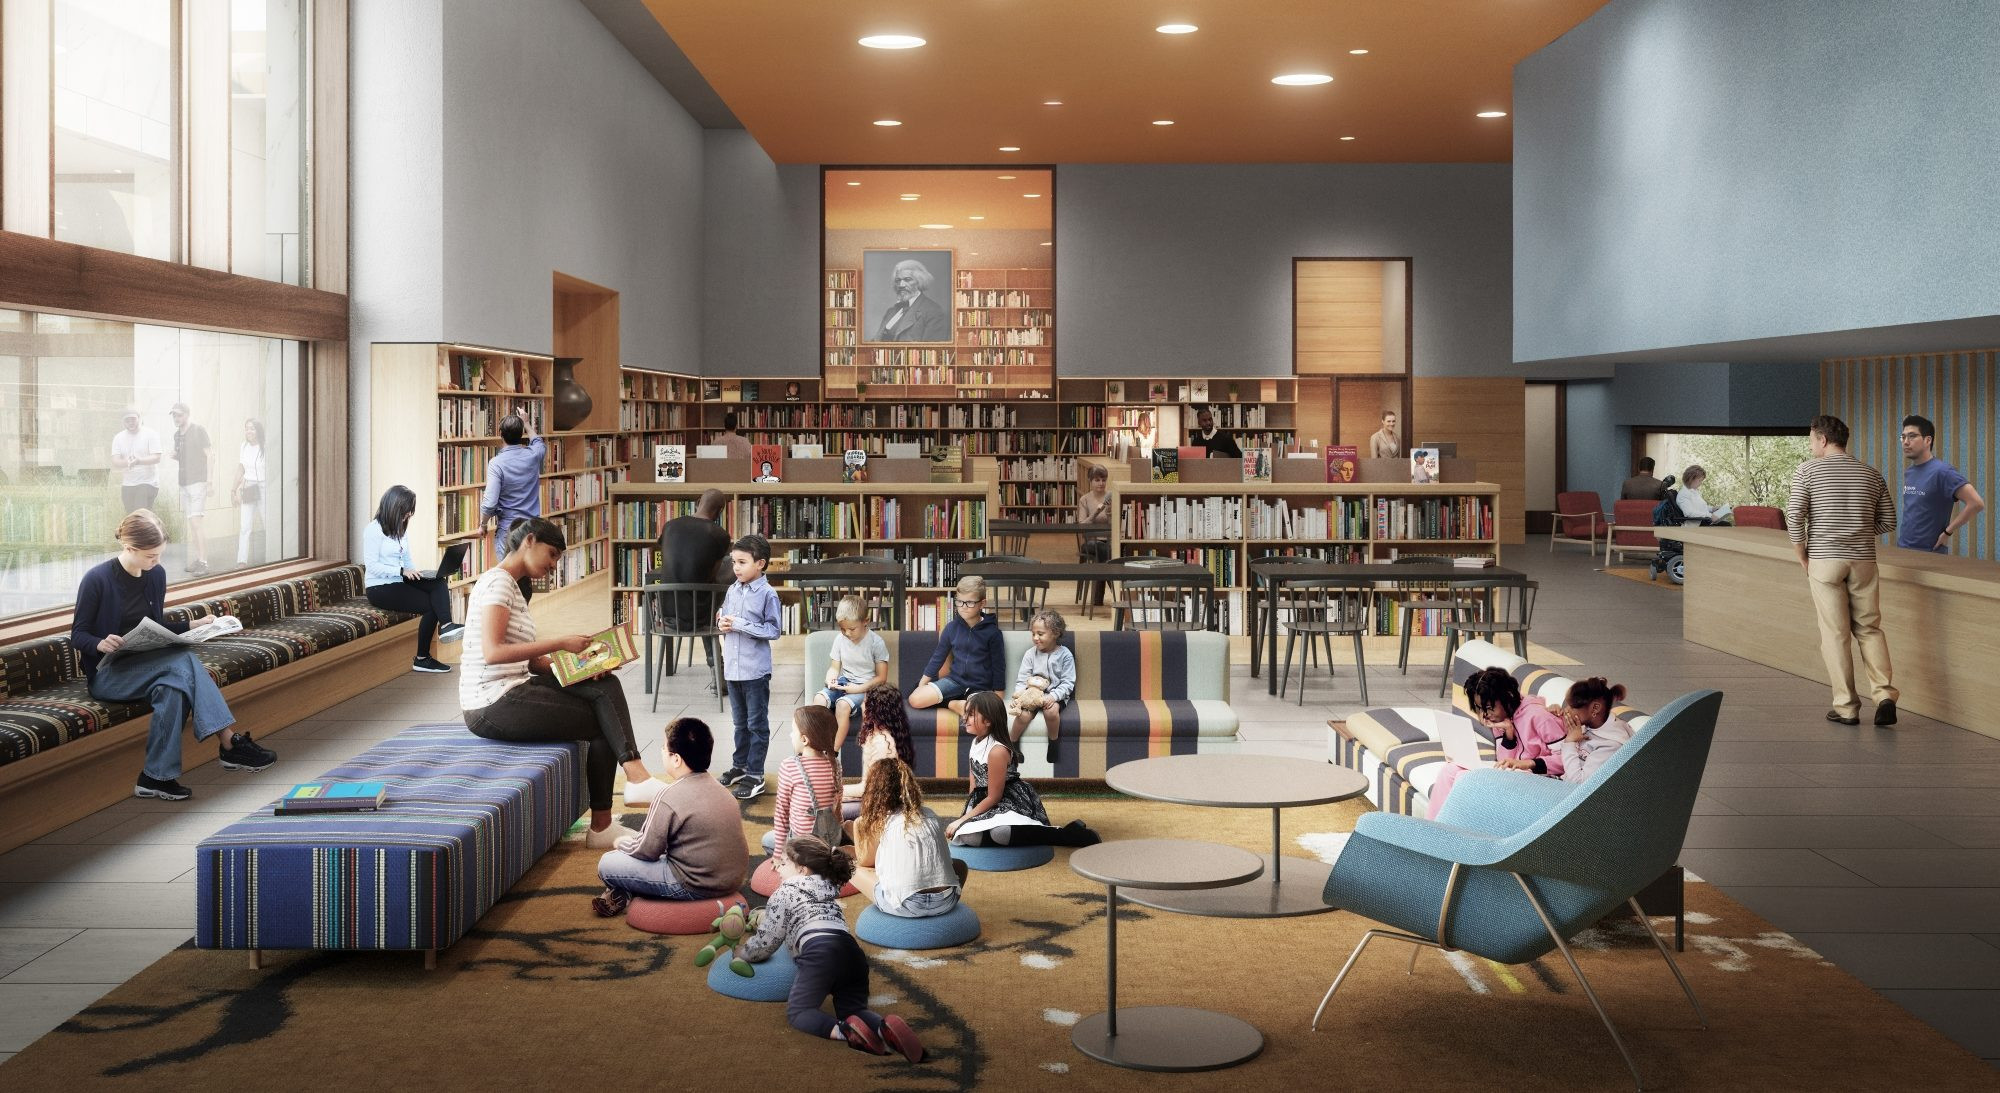 Rendering of Chicago Library in The Obama Presidential Center